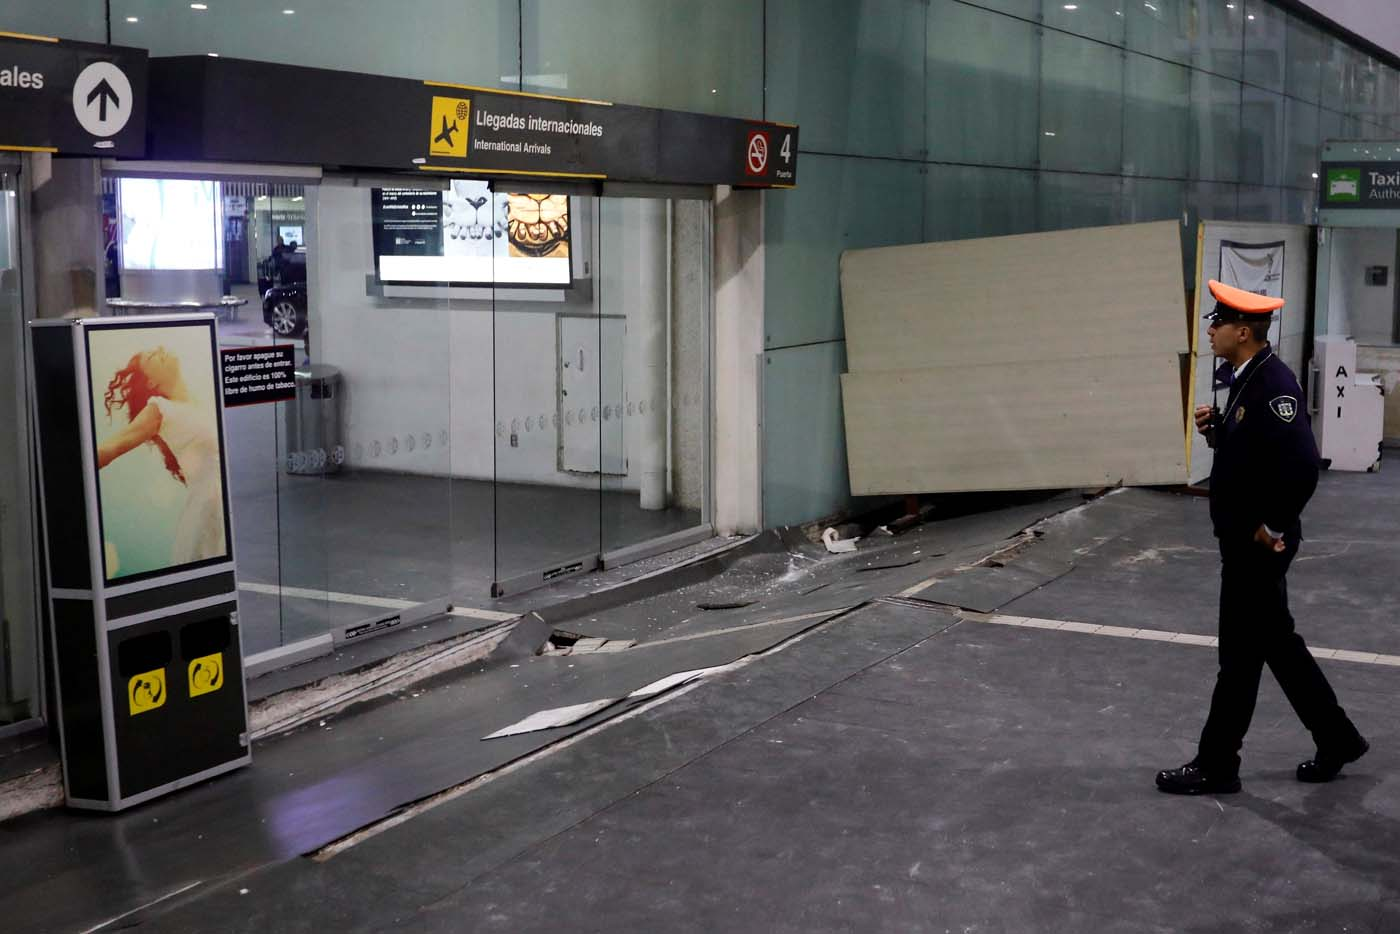 A view of damages on the floor in an entrance of the Benito Juarez international airport after an earthquake hit Mexico City, Mexico, September 8, 2017. REUTERS/Edgard Garrido